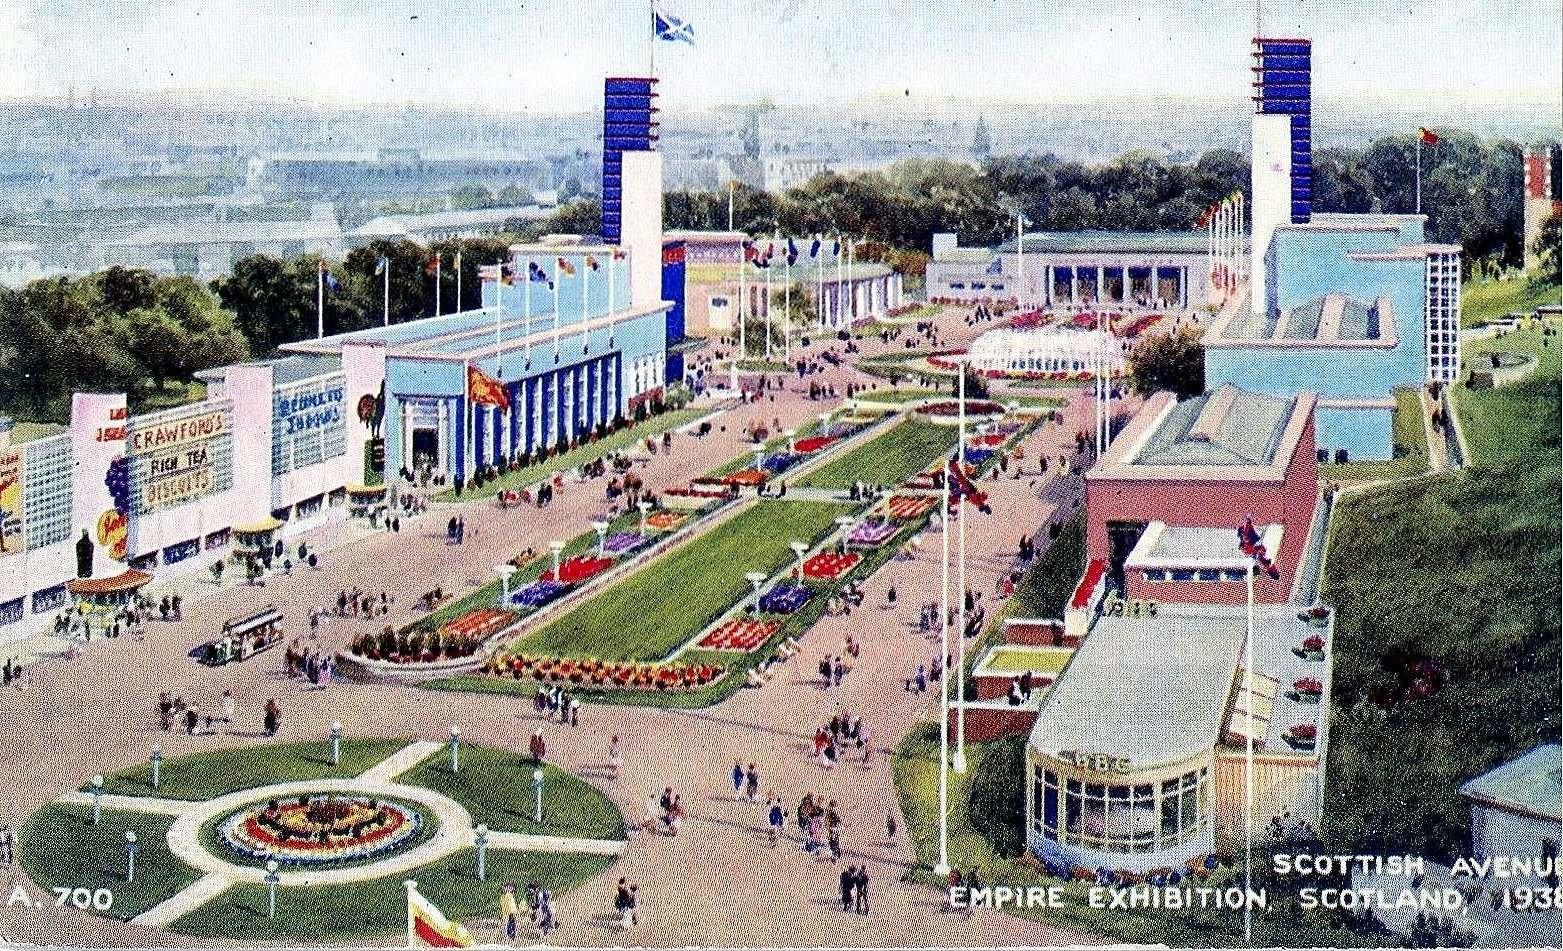 Scottish Avenue at the Empire Exhibition, 1938.